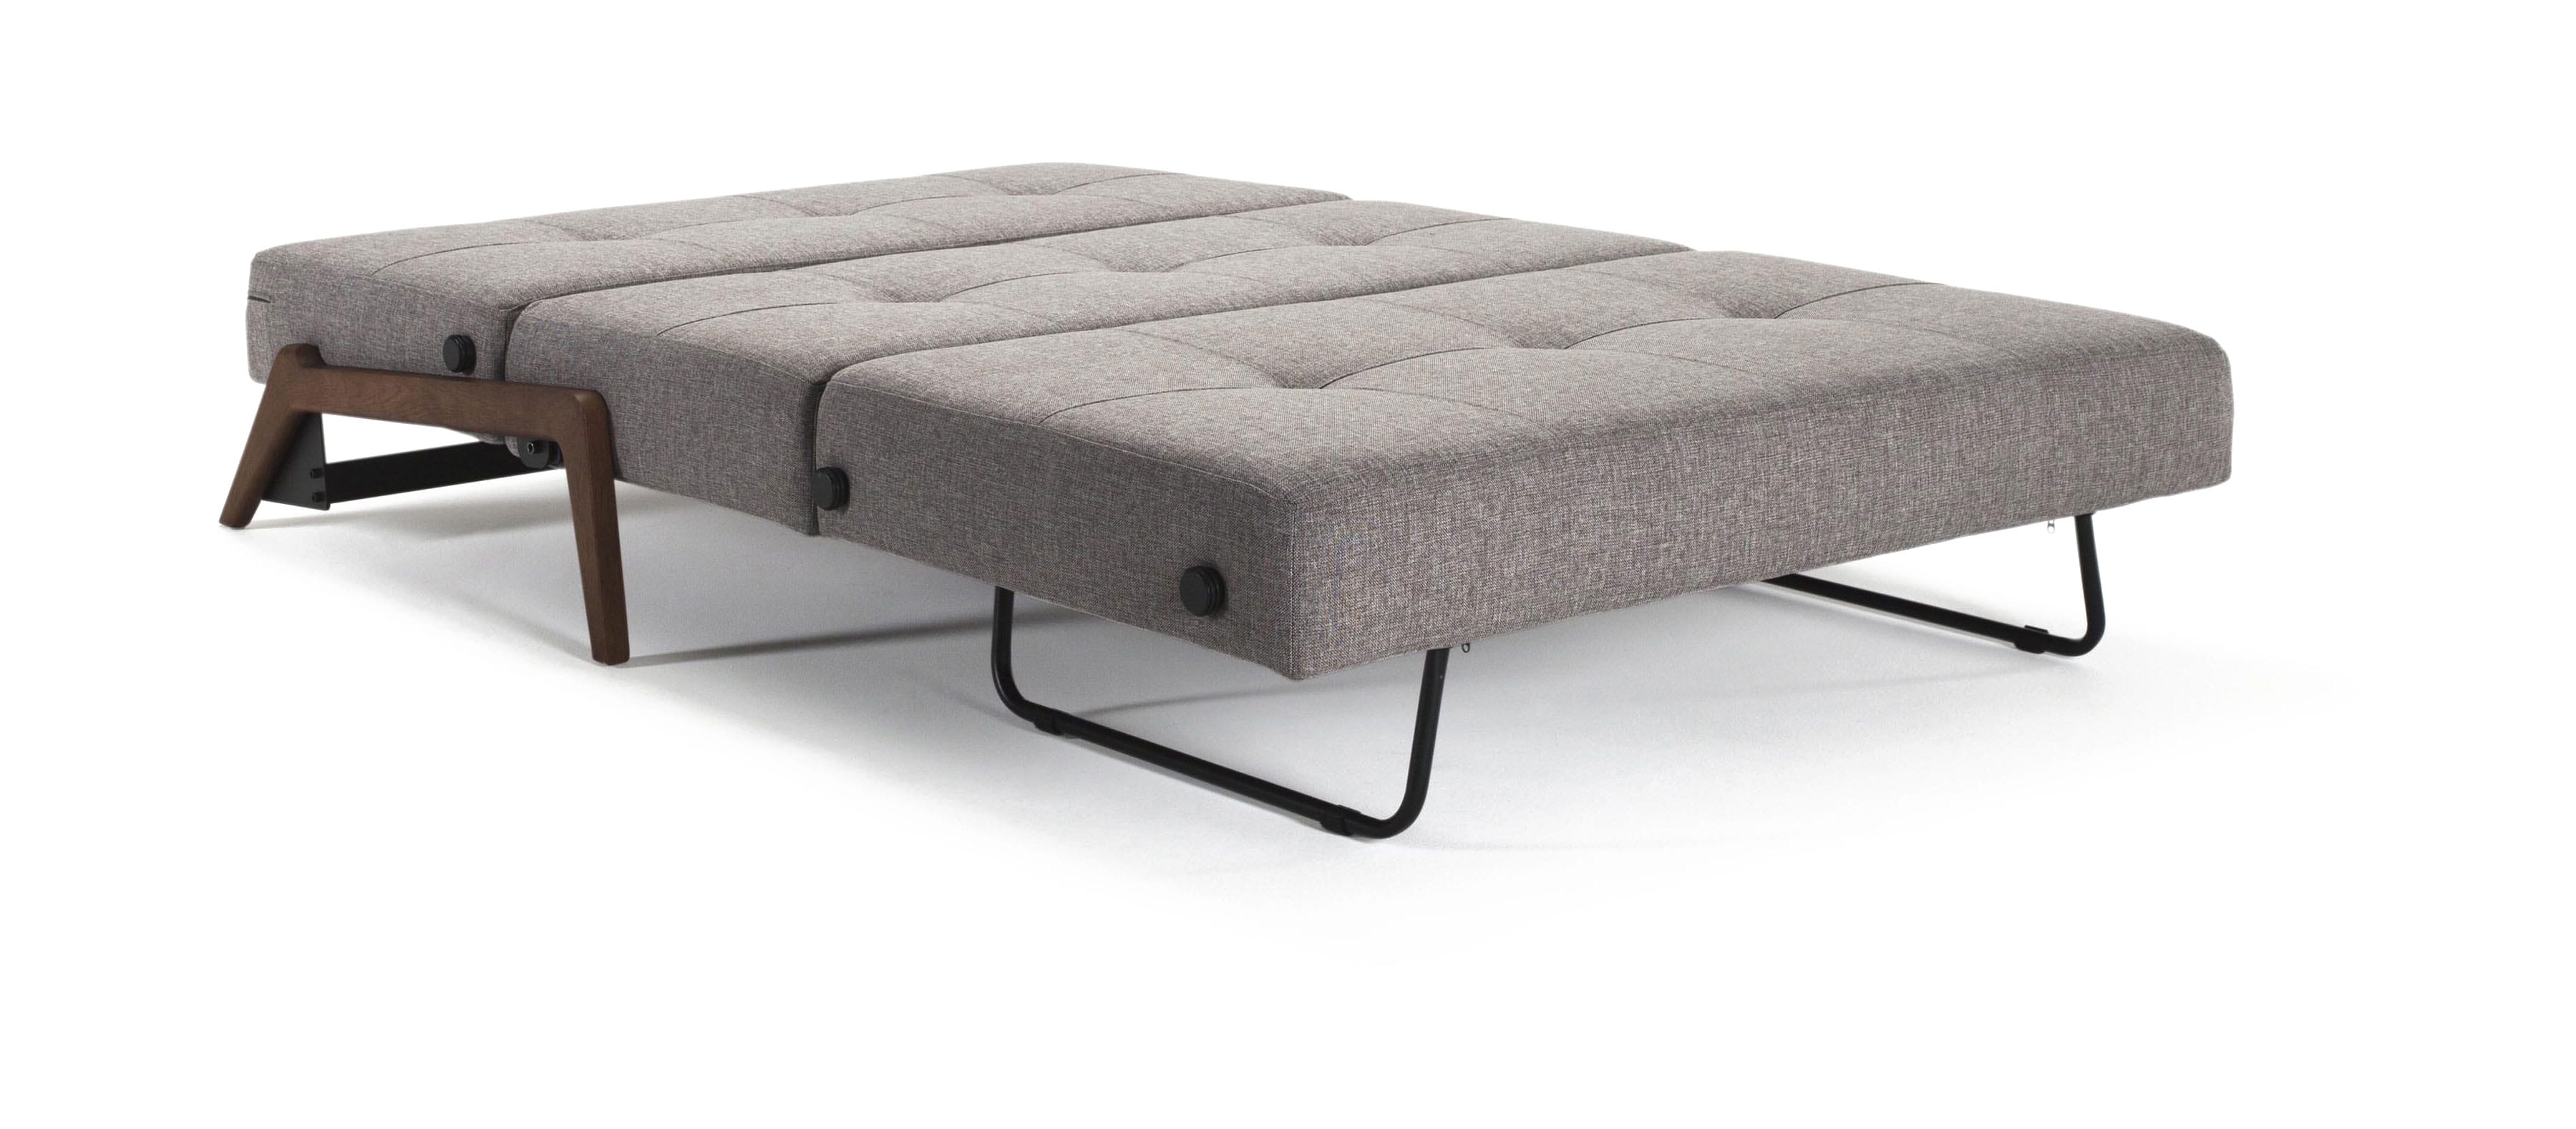 Sofa Bed Queen Size Harmony Queen Size Memory Foam Sofa Bed Expand Furniture Thesofa